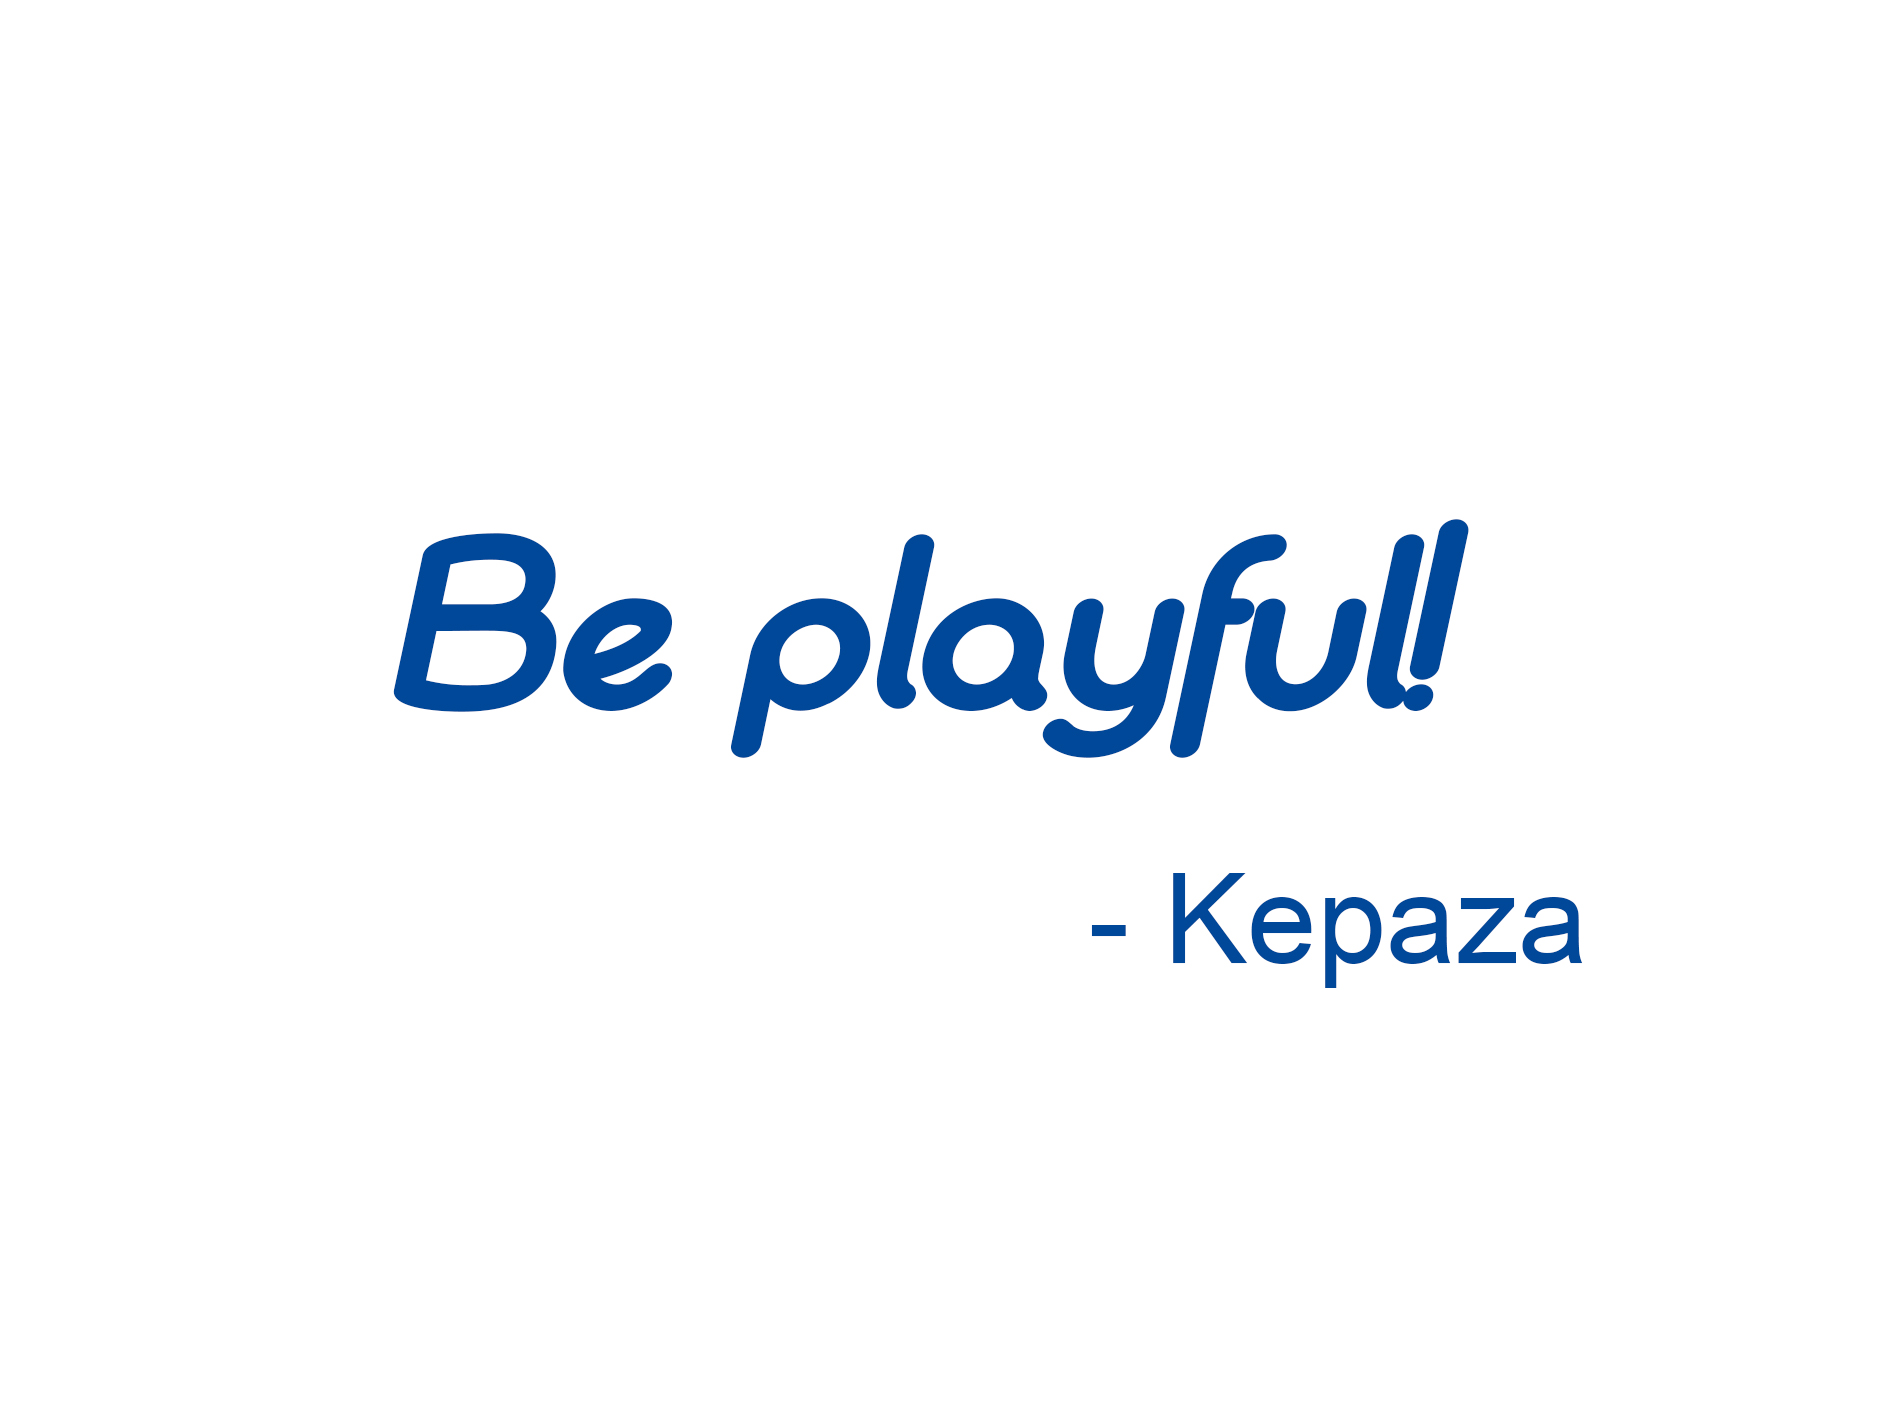 Kepaza Quote - Be playful.jpg